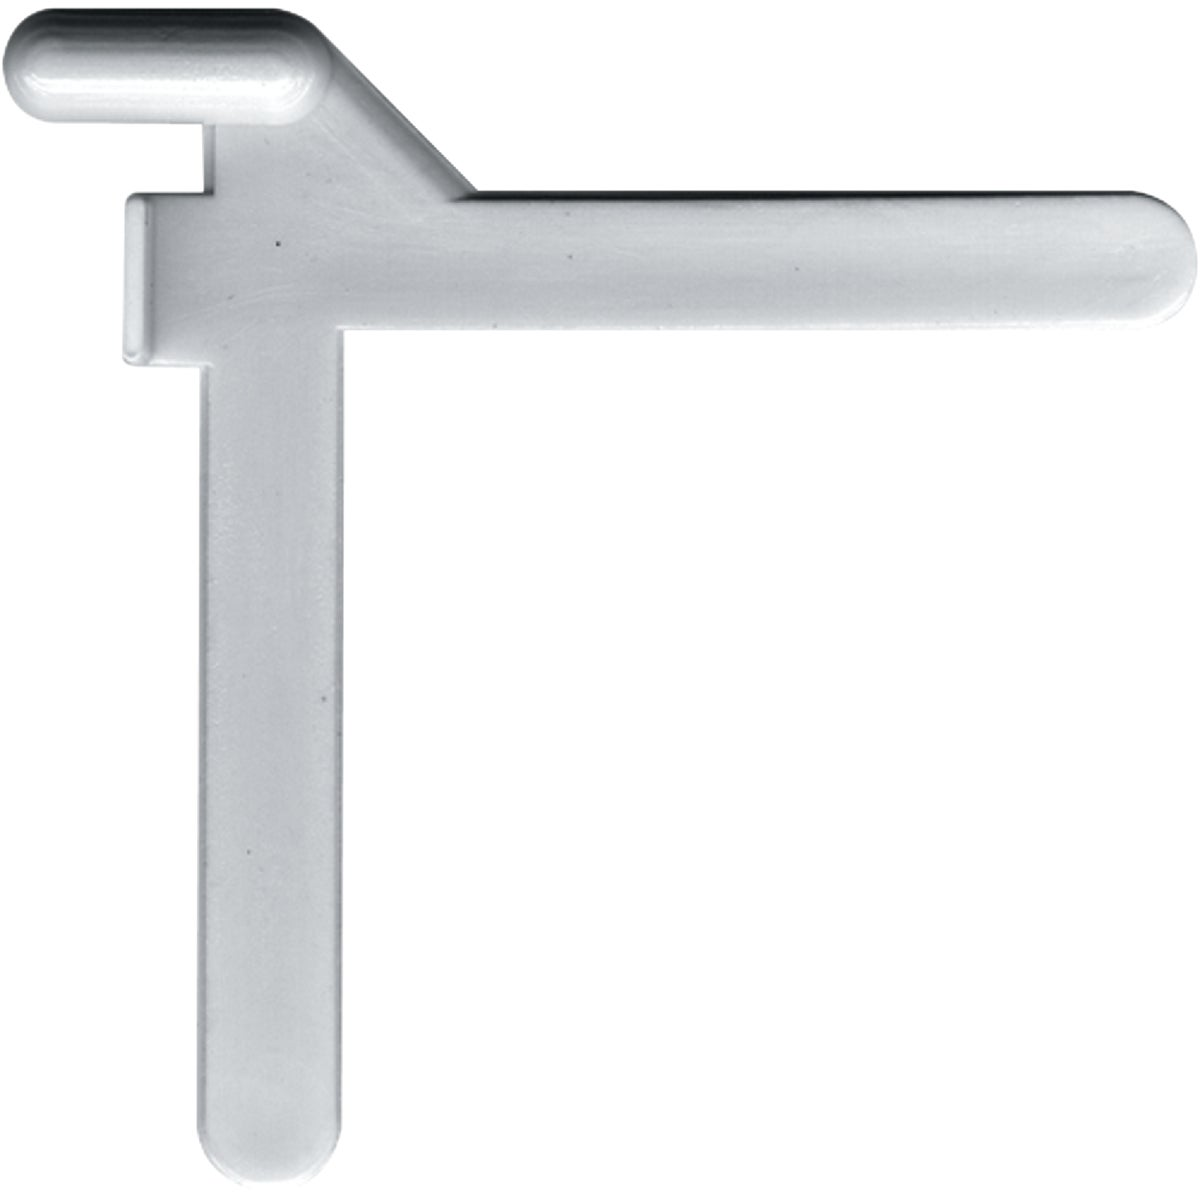 5/32X3/16 LH TILT KEY - PL15140 by Prime Line Products